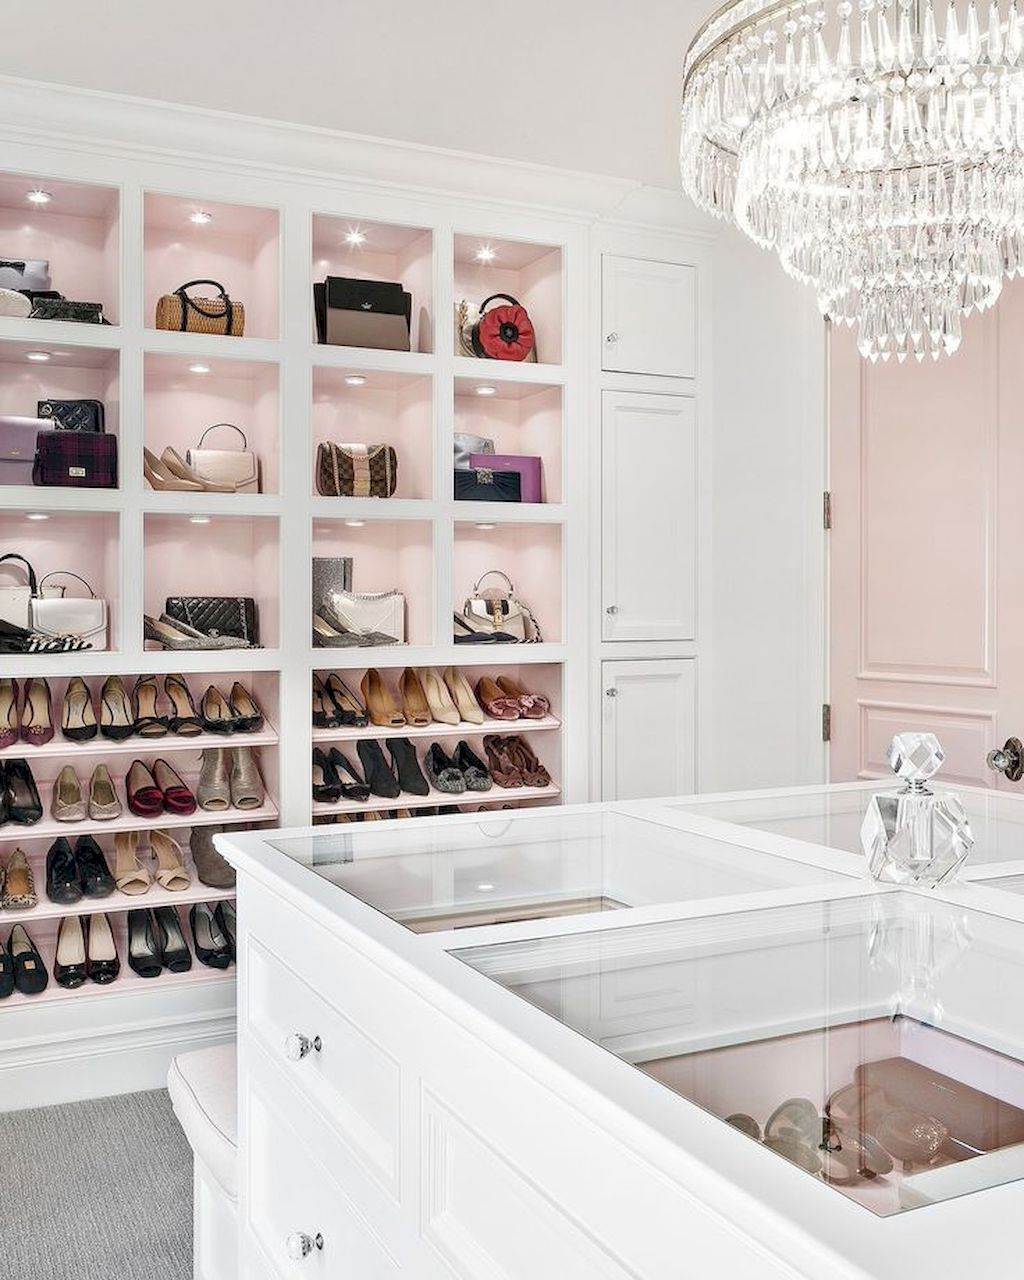 Shocking Closet Door Concepts That Add Model To Your Bed room #dreamclosets